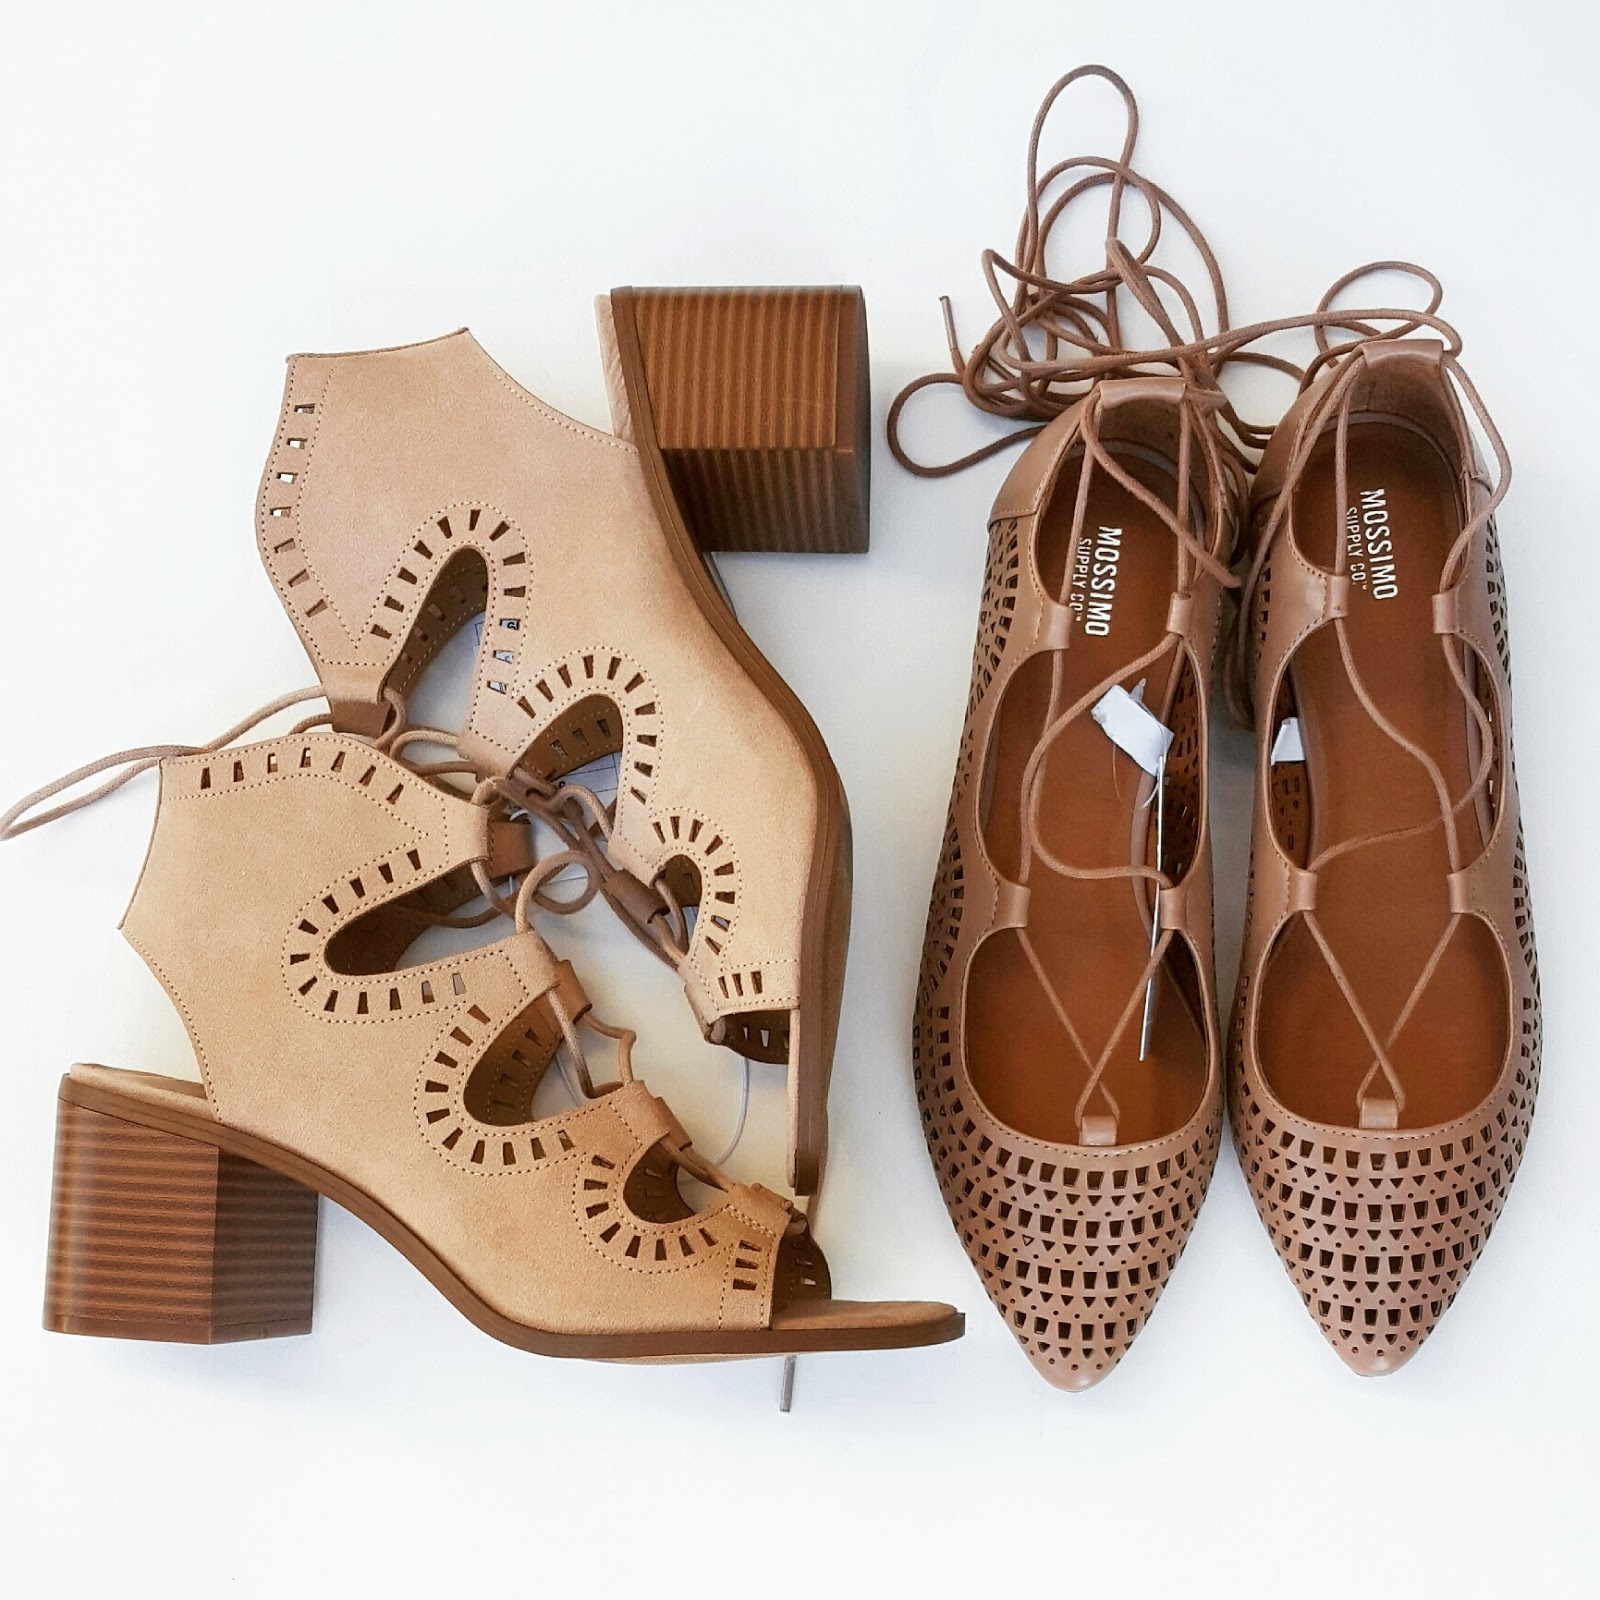 9495f0a4a1d7 Today at Target you can buy 1 get 1 50% off on all shoes! Get these Mossimo  Maeve Gladiator Sandals or these Mossimo Feliza Lase Cut Flats as part of  the ...